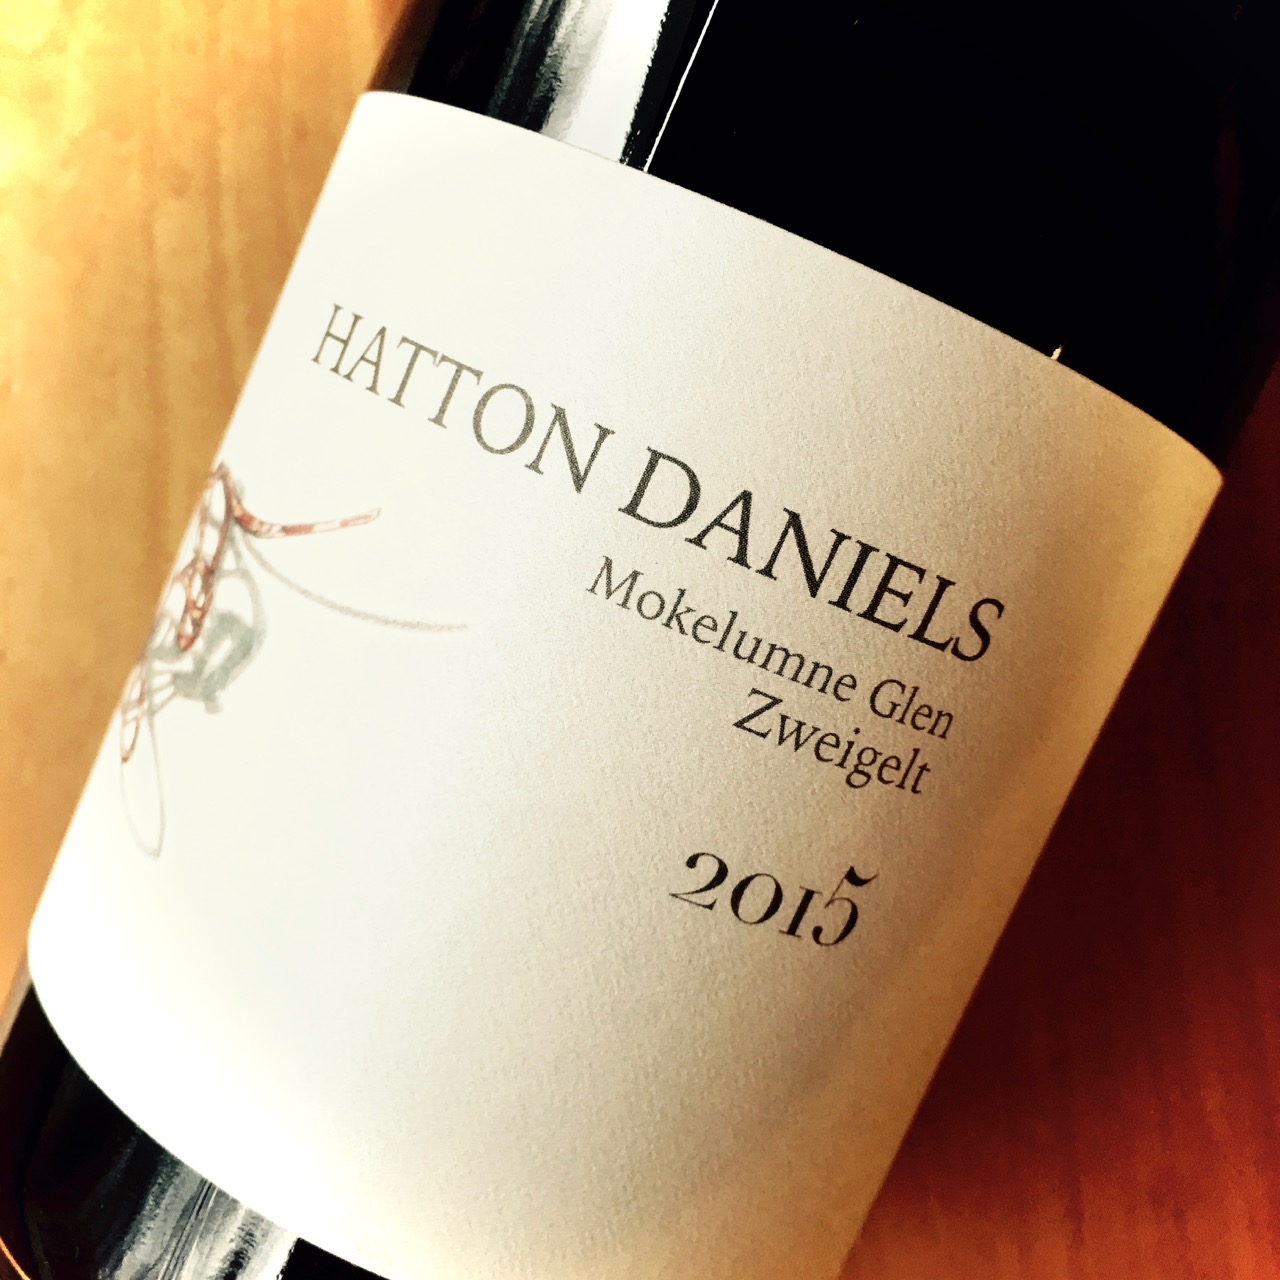 2015 Hatton Daniels Wine Cellars Zweigelt Lodi